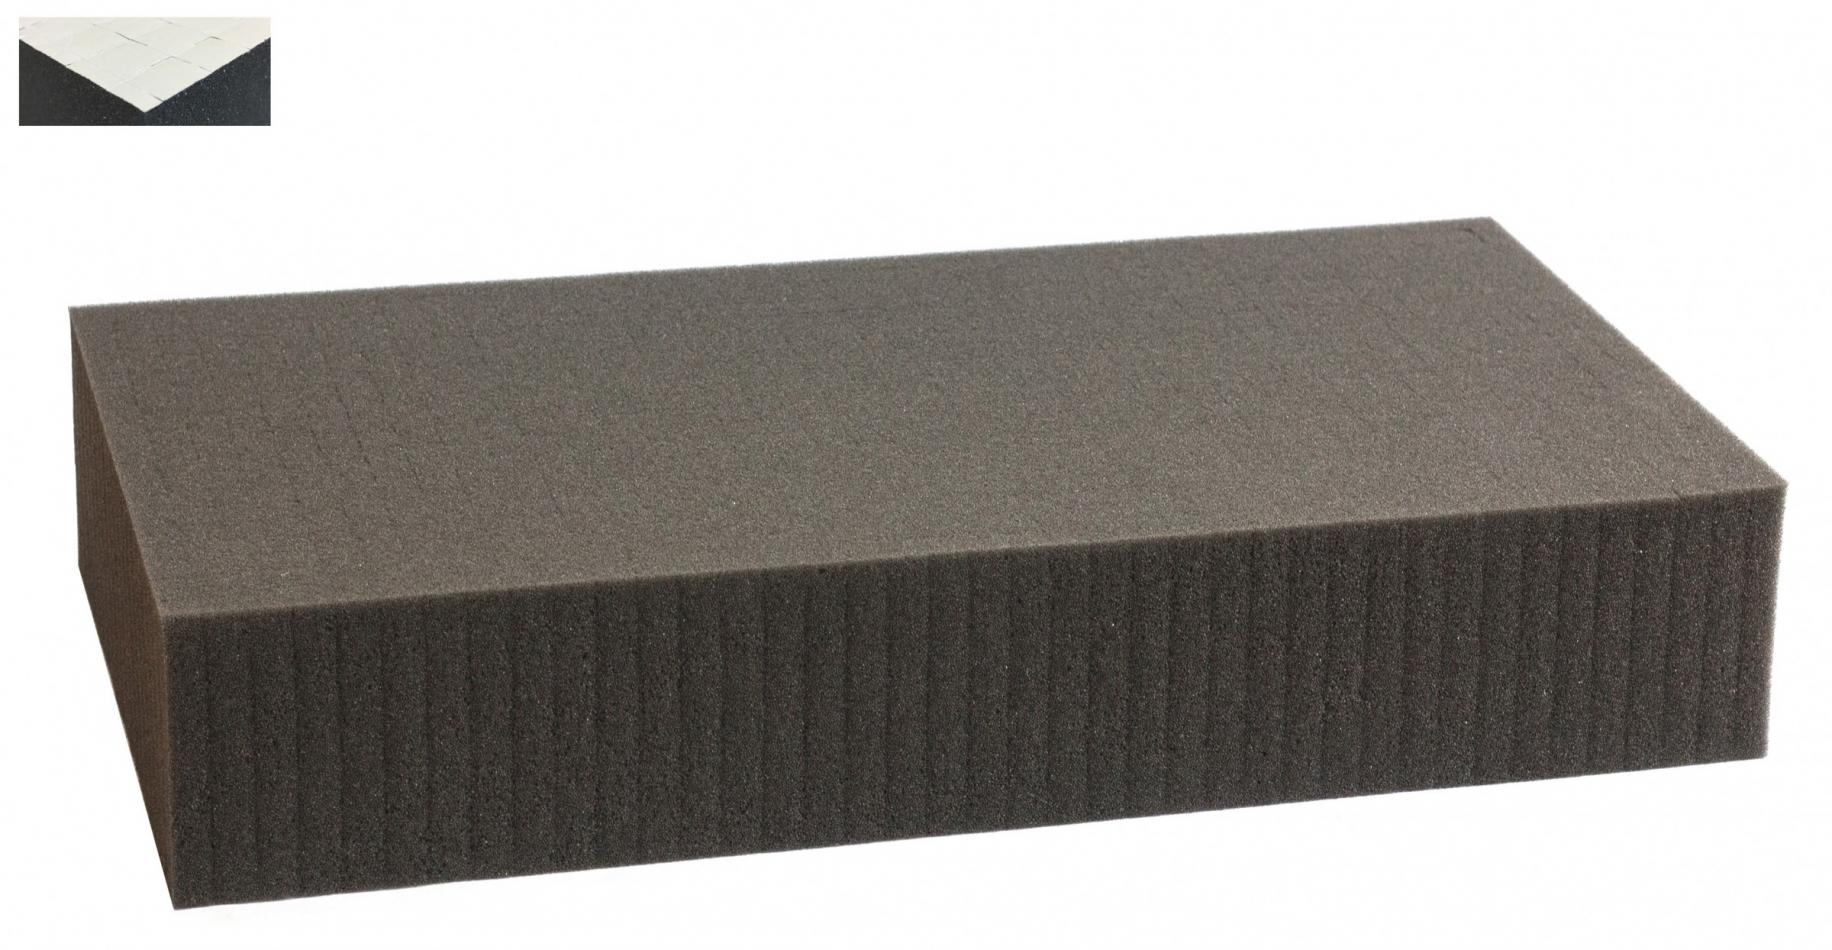 1000 mm x 500 mm x 90 mm self adhesive - Raster 15 mm - Pick and Pluck / Pre-Cubed foam tray